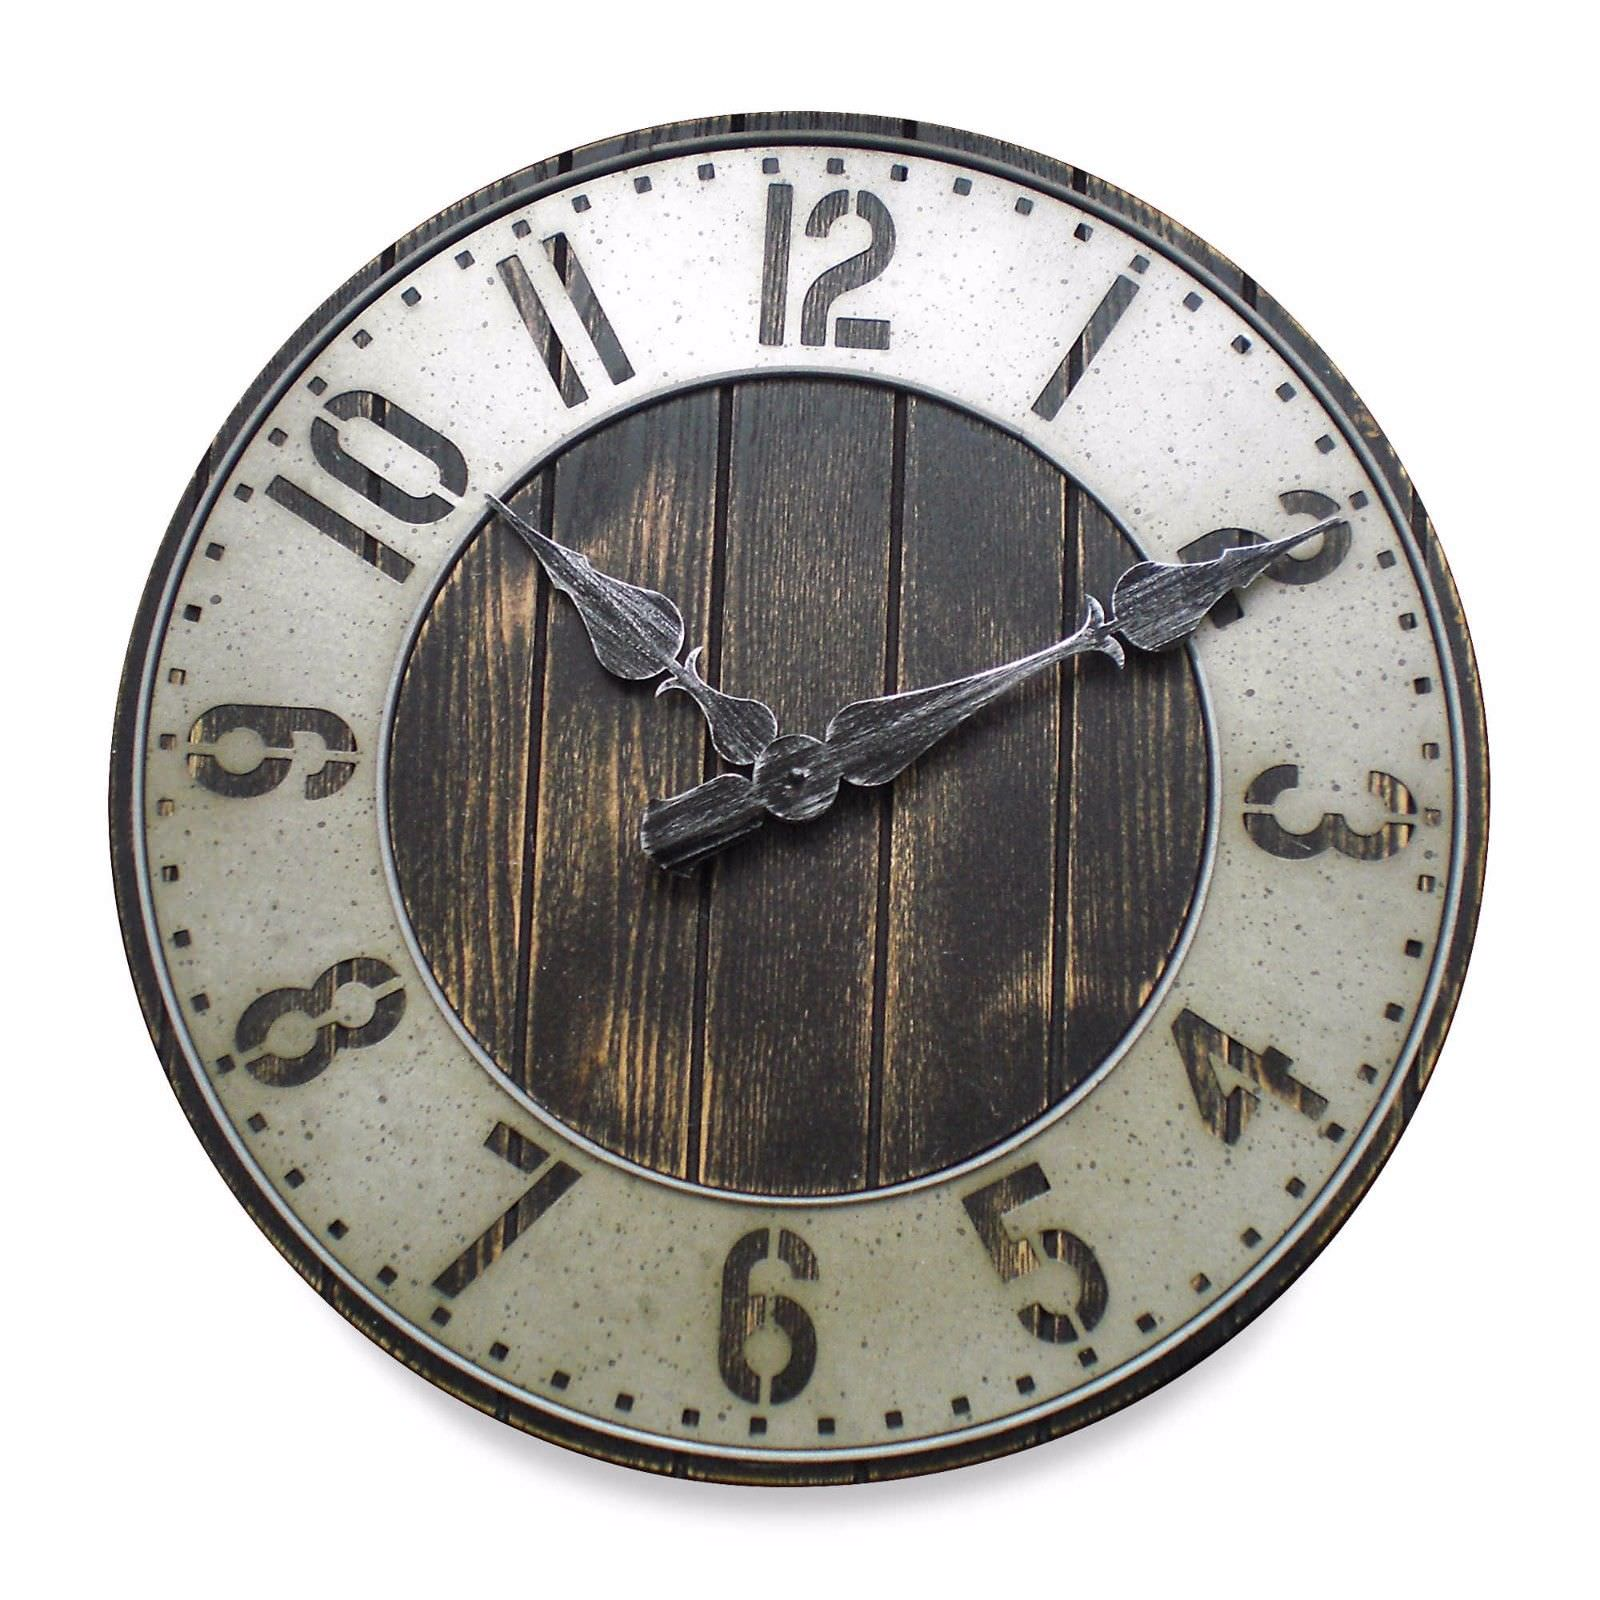 Wall Clock Design Photo : Industrial wall clock designs ideas design trends